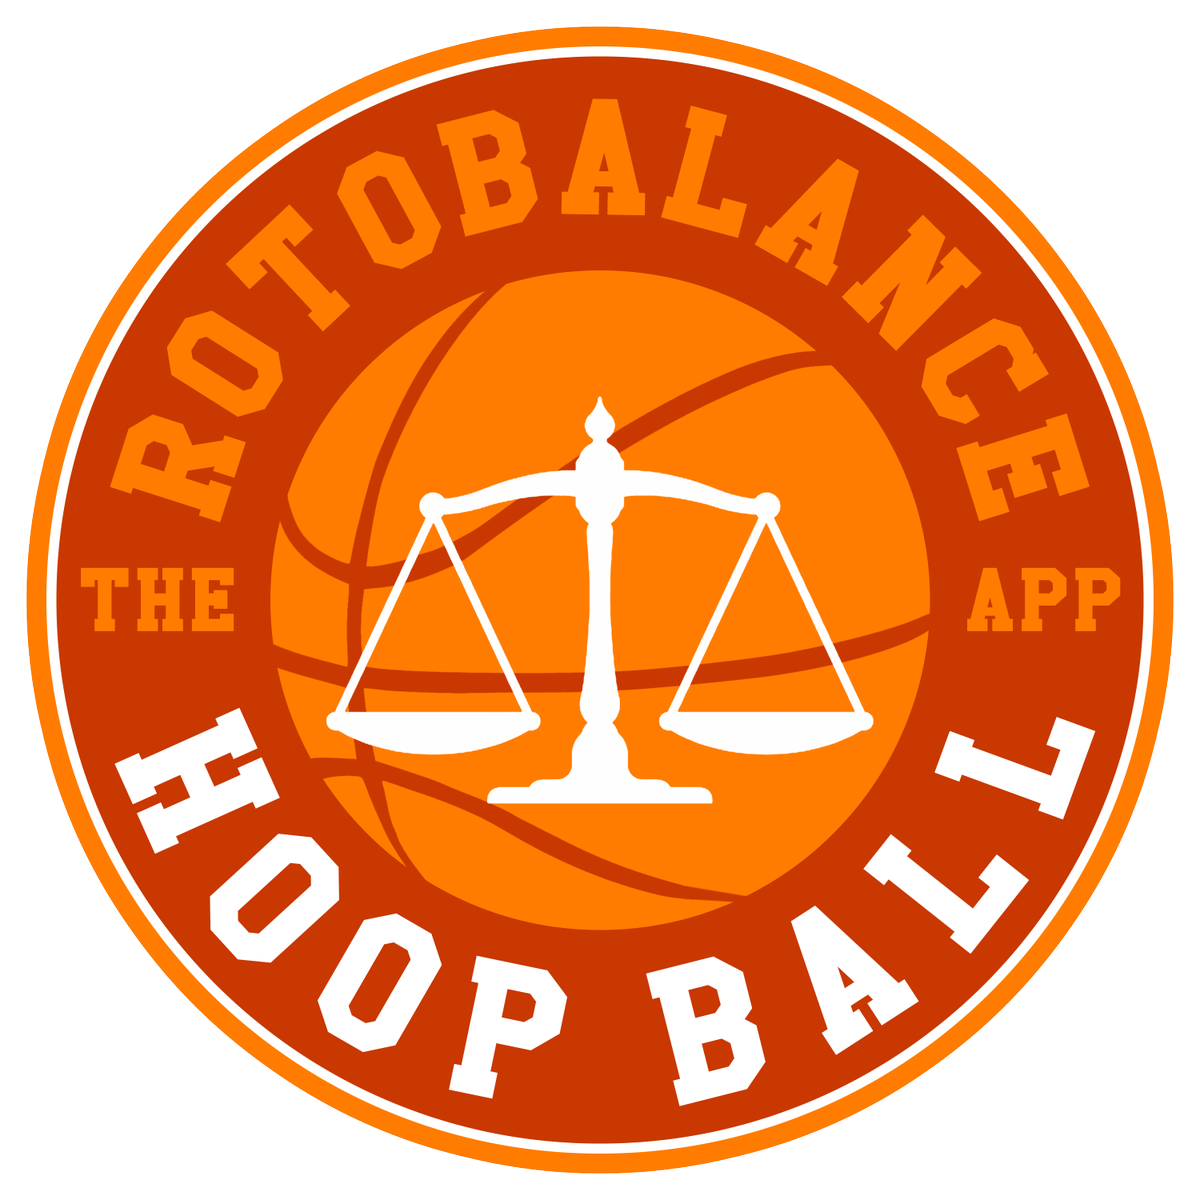 Hoop Ball on Twitter: